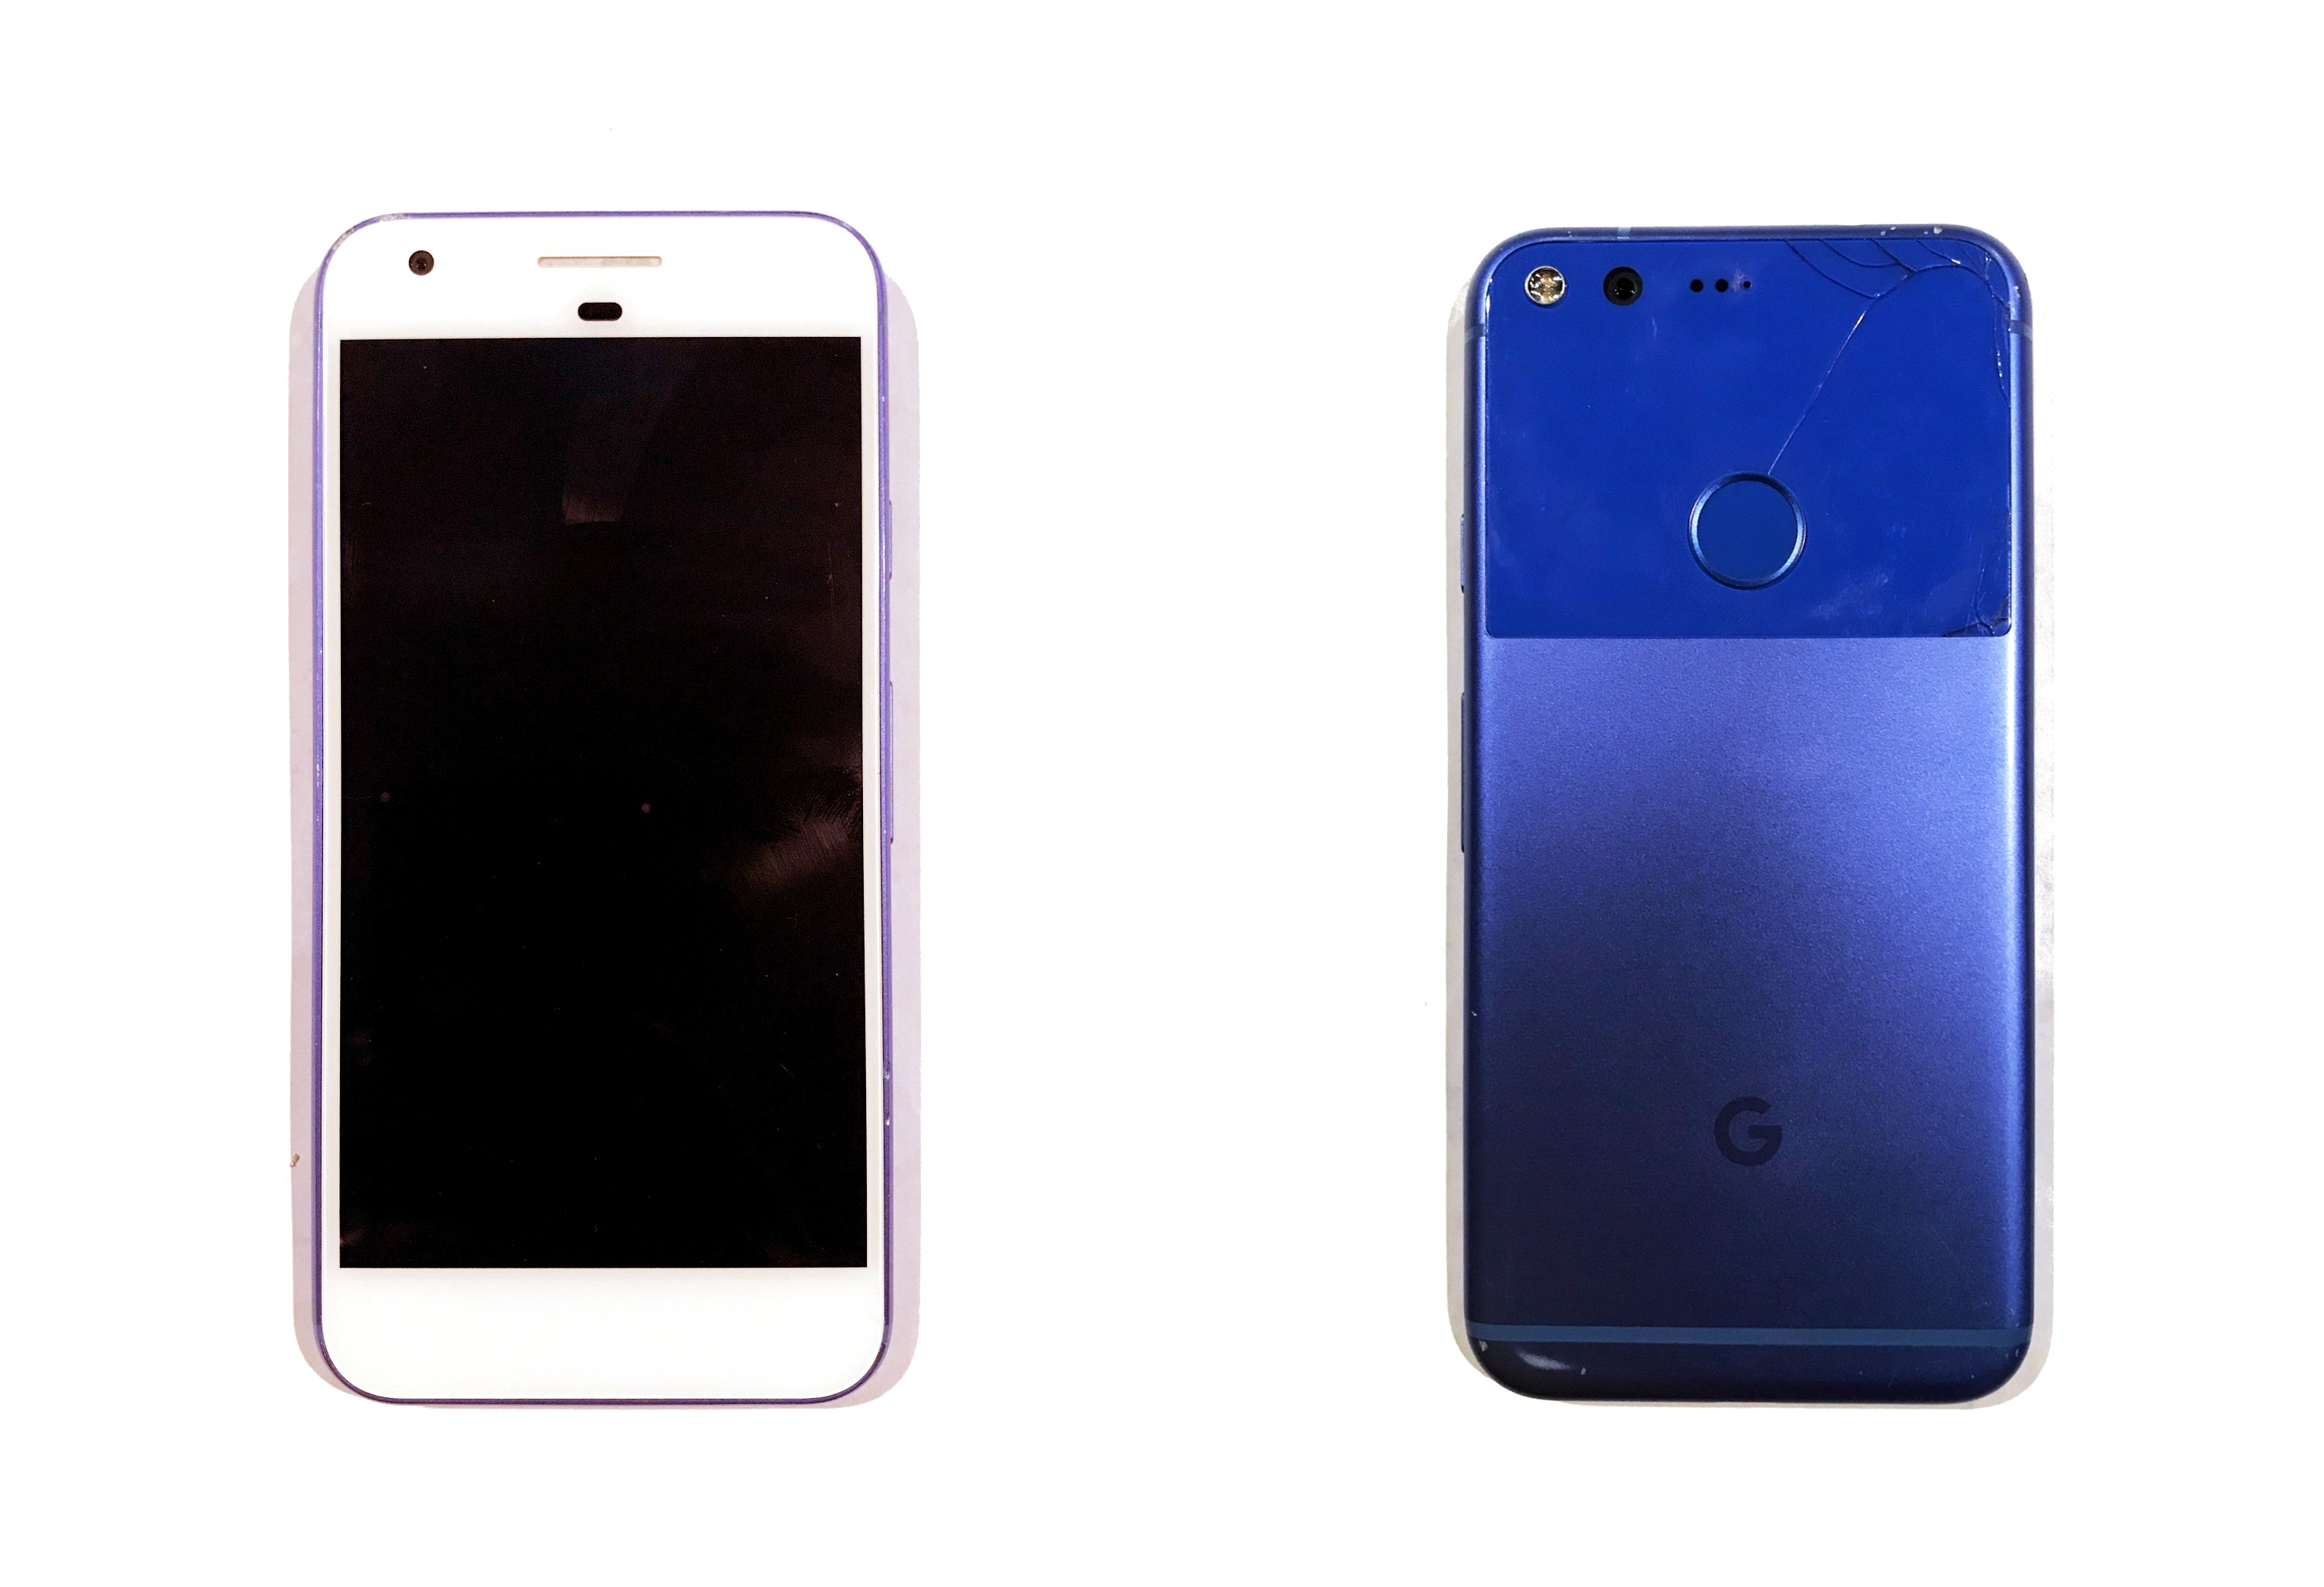 Equipment Spotlight: Google Pixel Really Blue [Color]